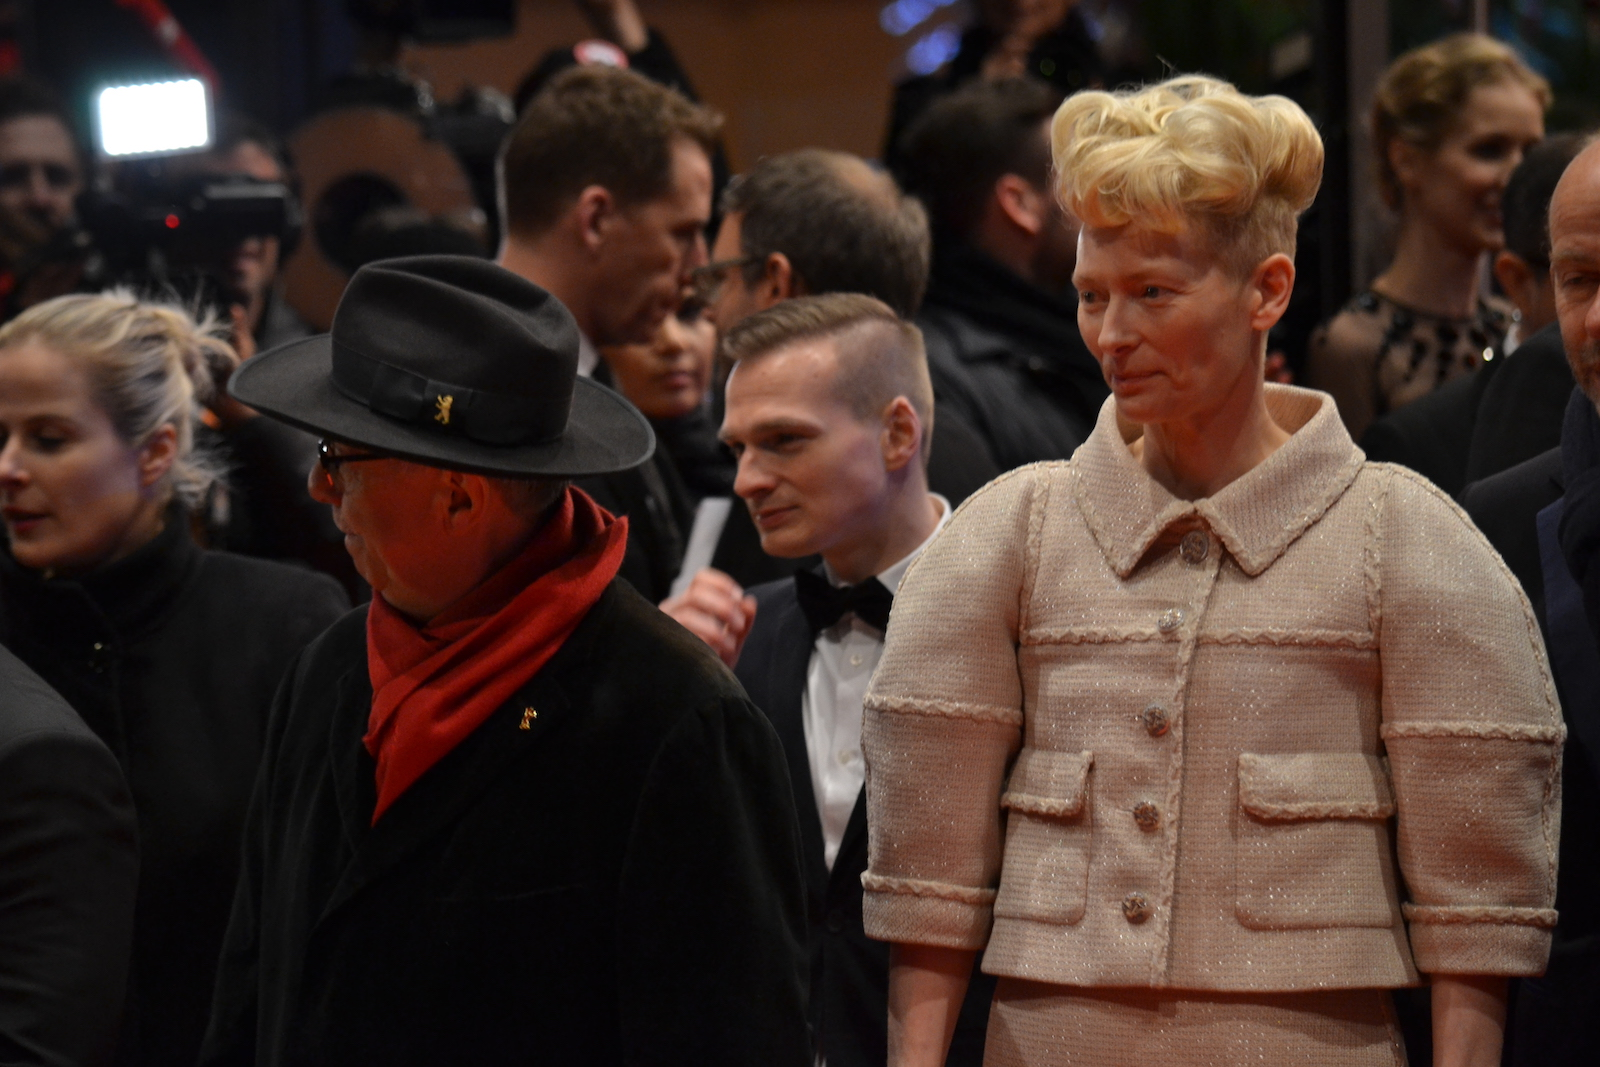 Berlino 2016: Tilda Swinton sul red carpet di Ave, Cesare!